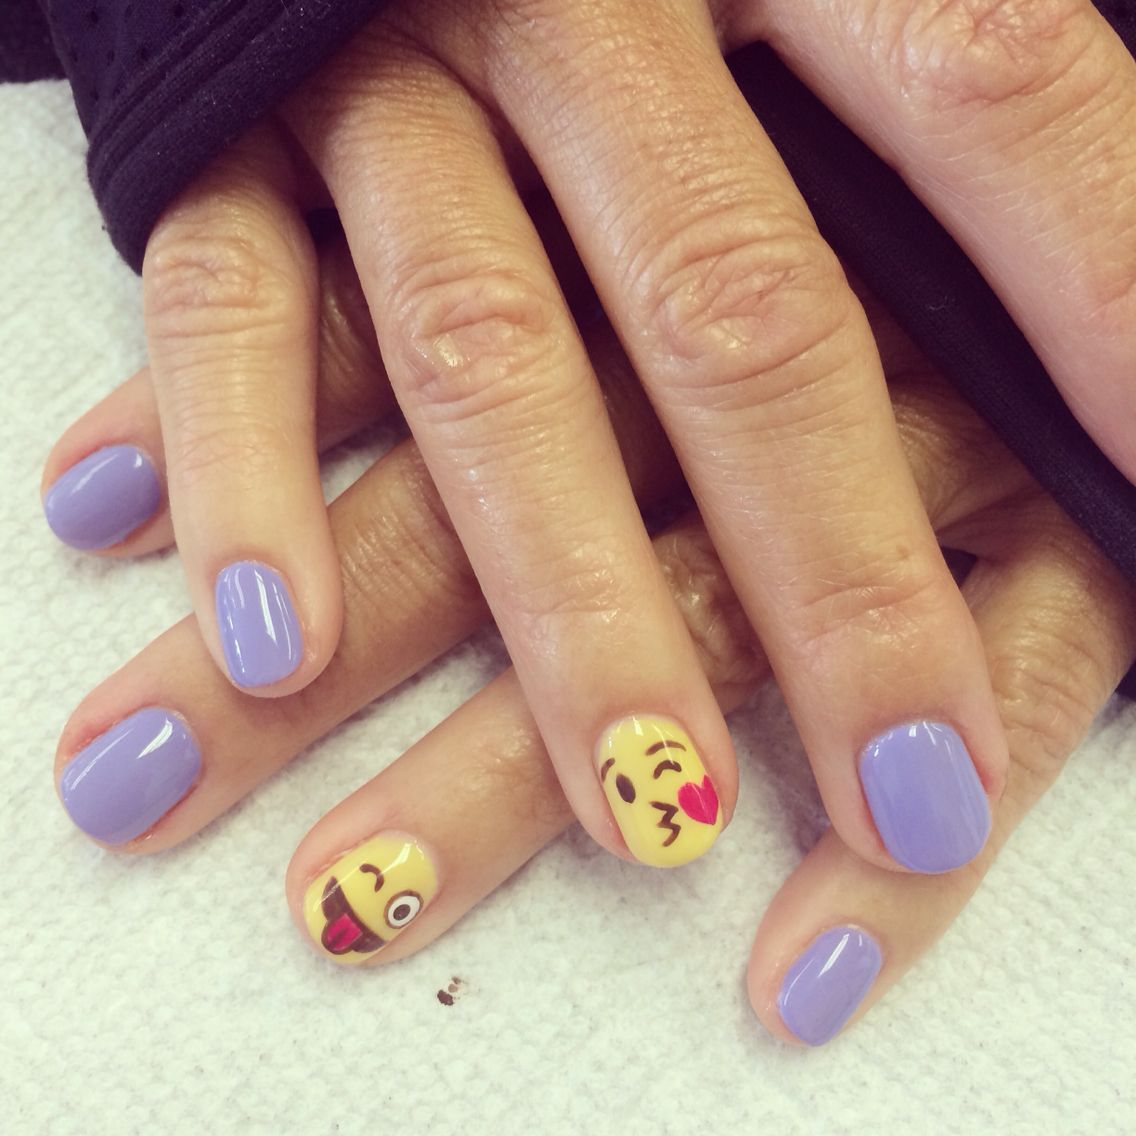 Emoji nail art design | Fashion | Pinterest | Emoji nails, Emoji and ...